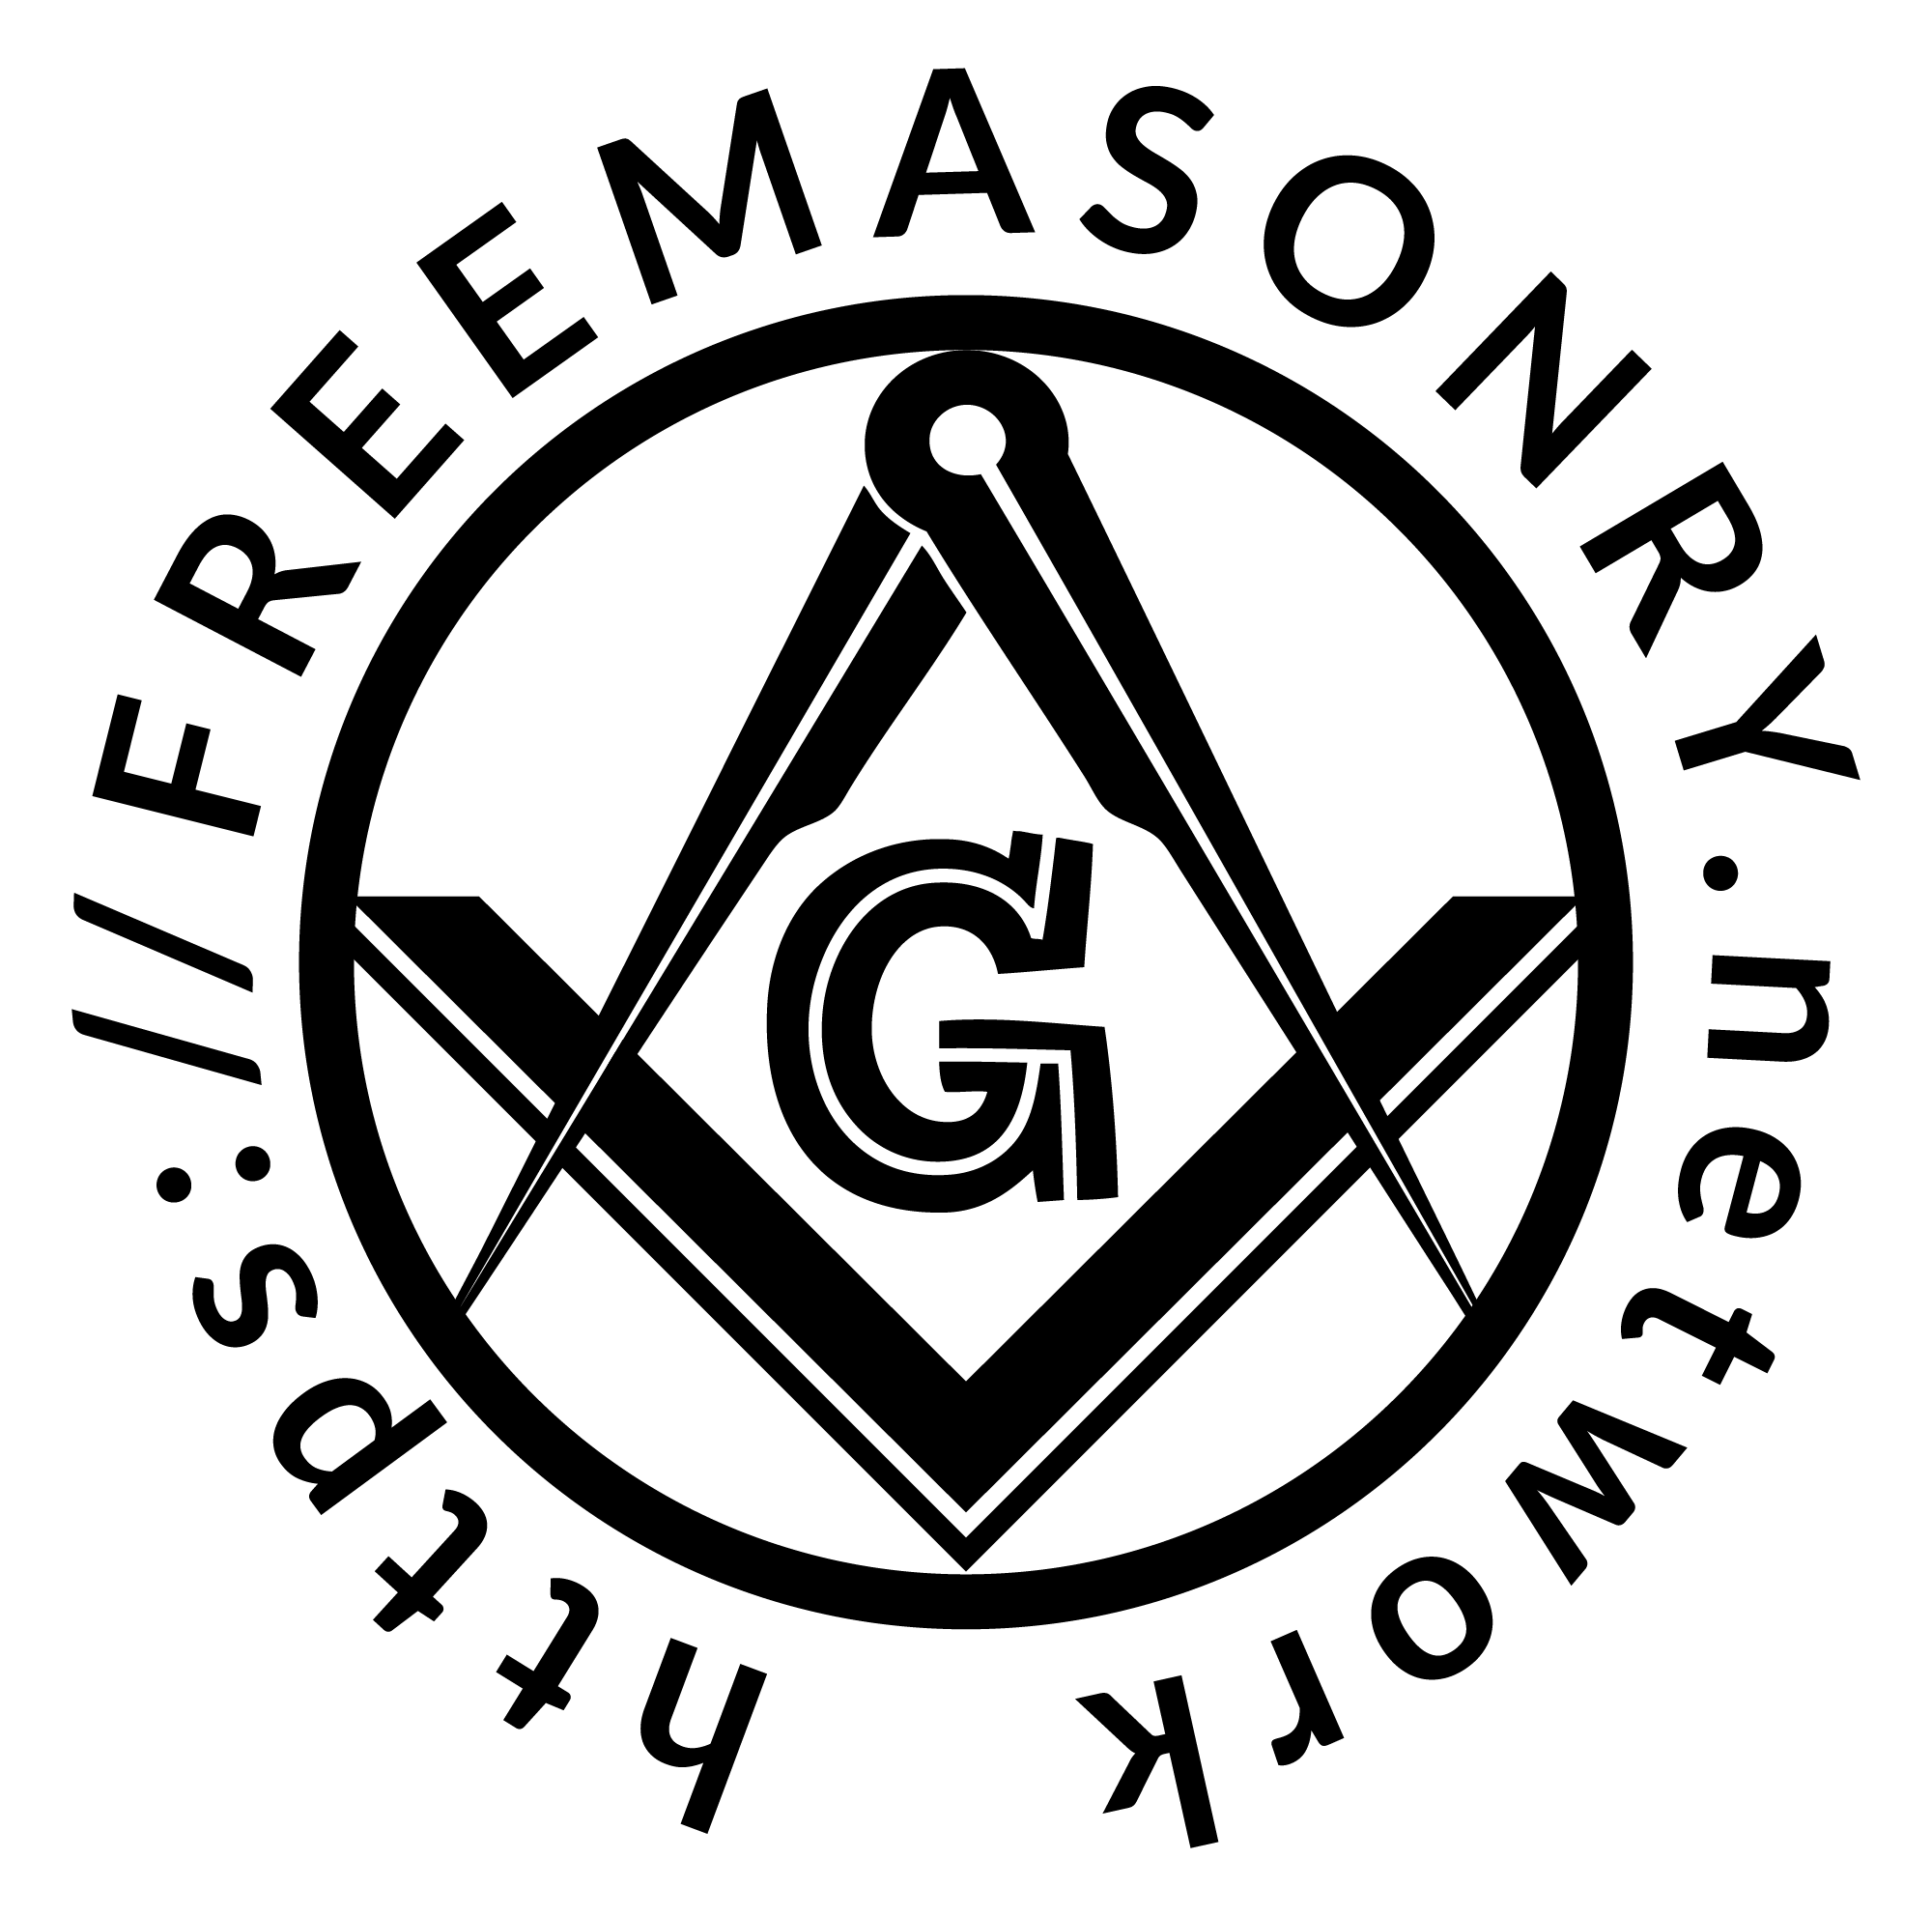 FAMOUS FREEMASONS – ALPHABETICAL LIST